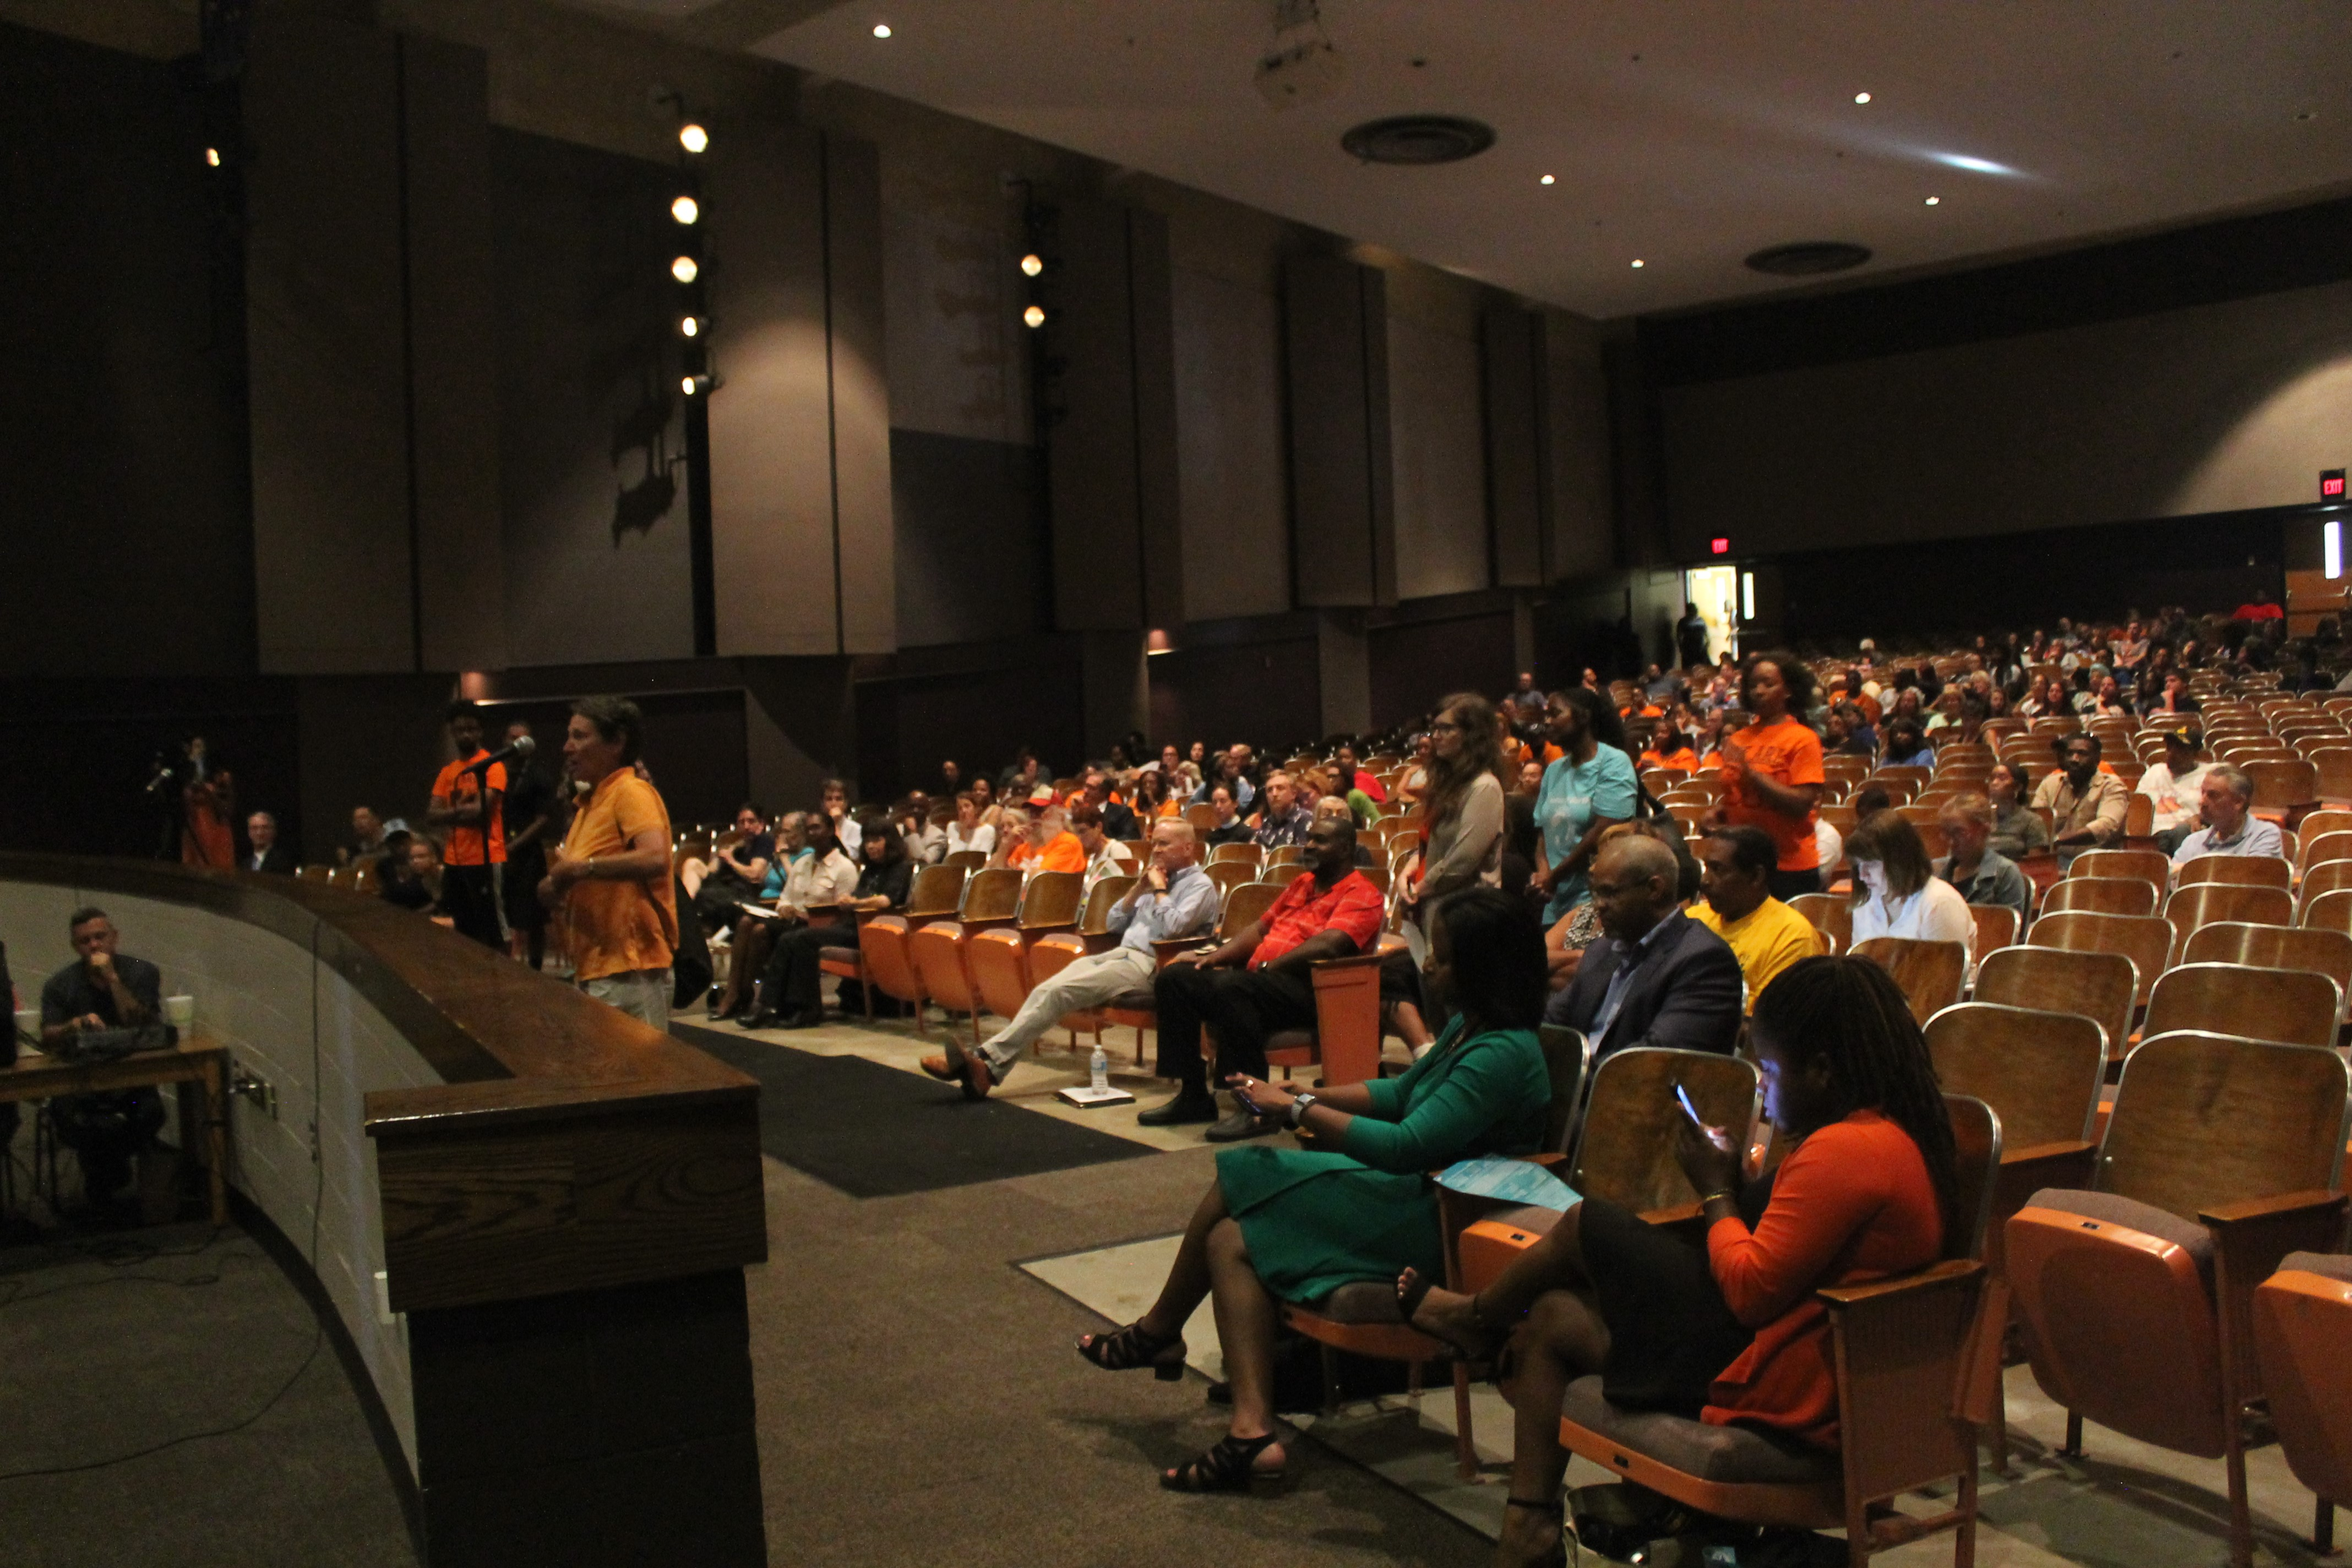 Hundreds of people gathered in the Broad Ripple High School auditorium Tuesday night.